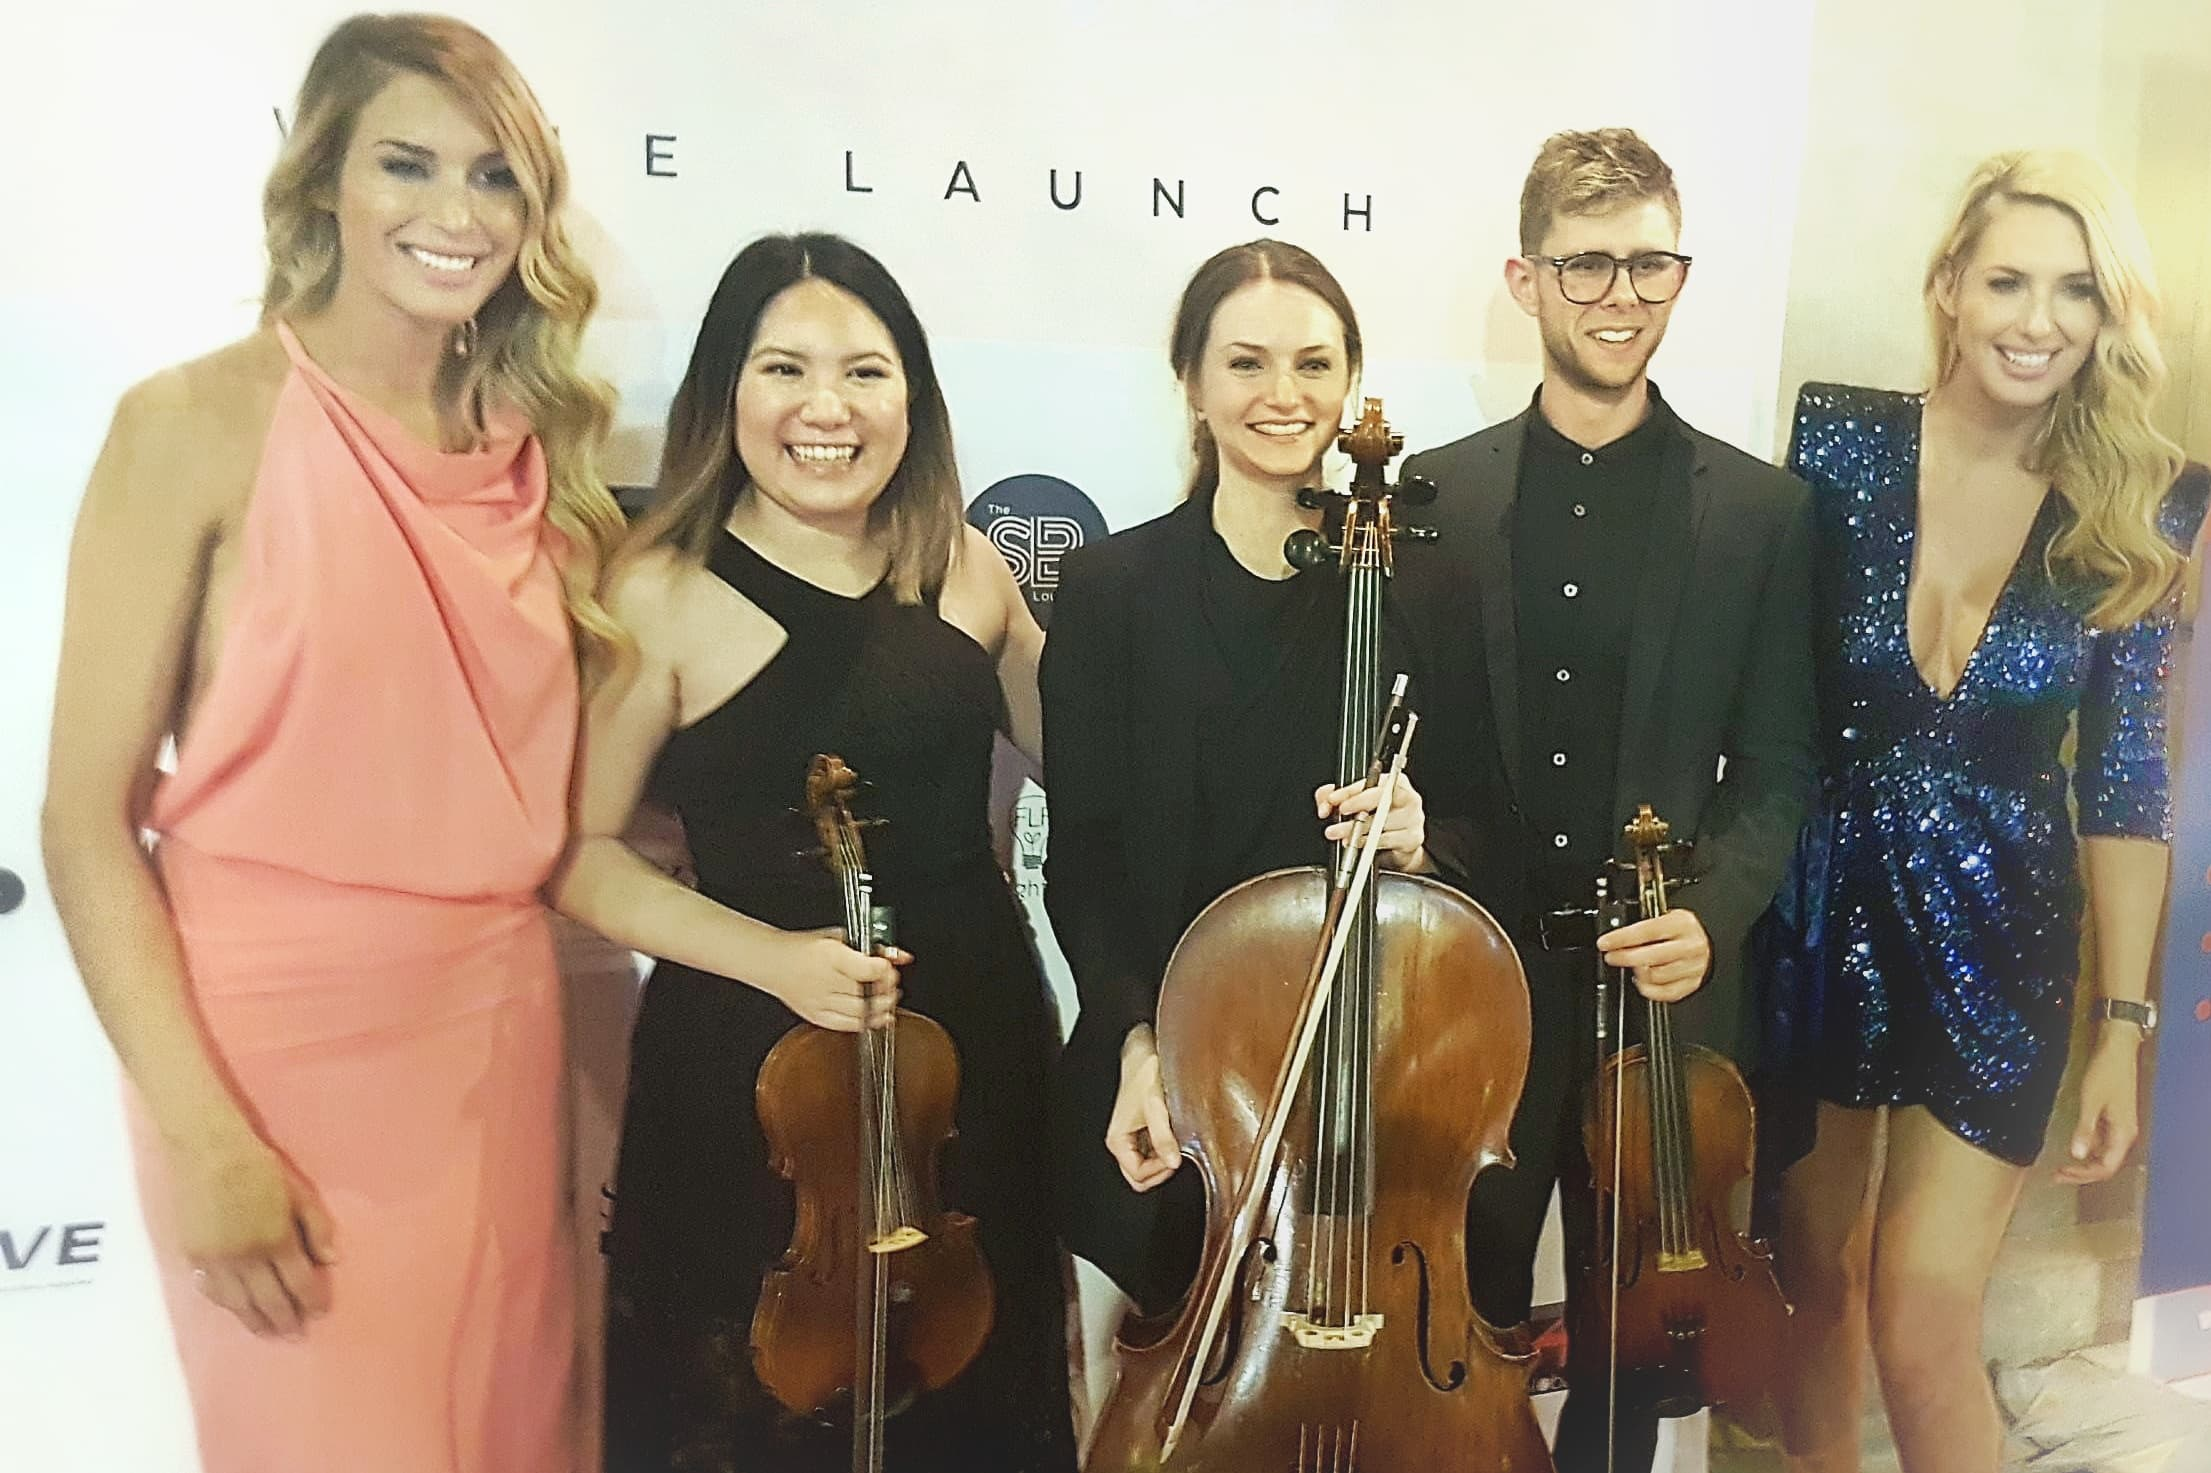 wedding-ceremony-reception-corporate-music-entertainment-perth-south-west-string-quartet-trio-orchestra (7).jpg